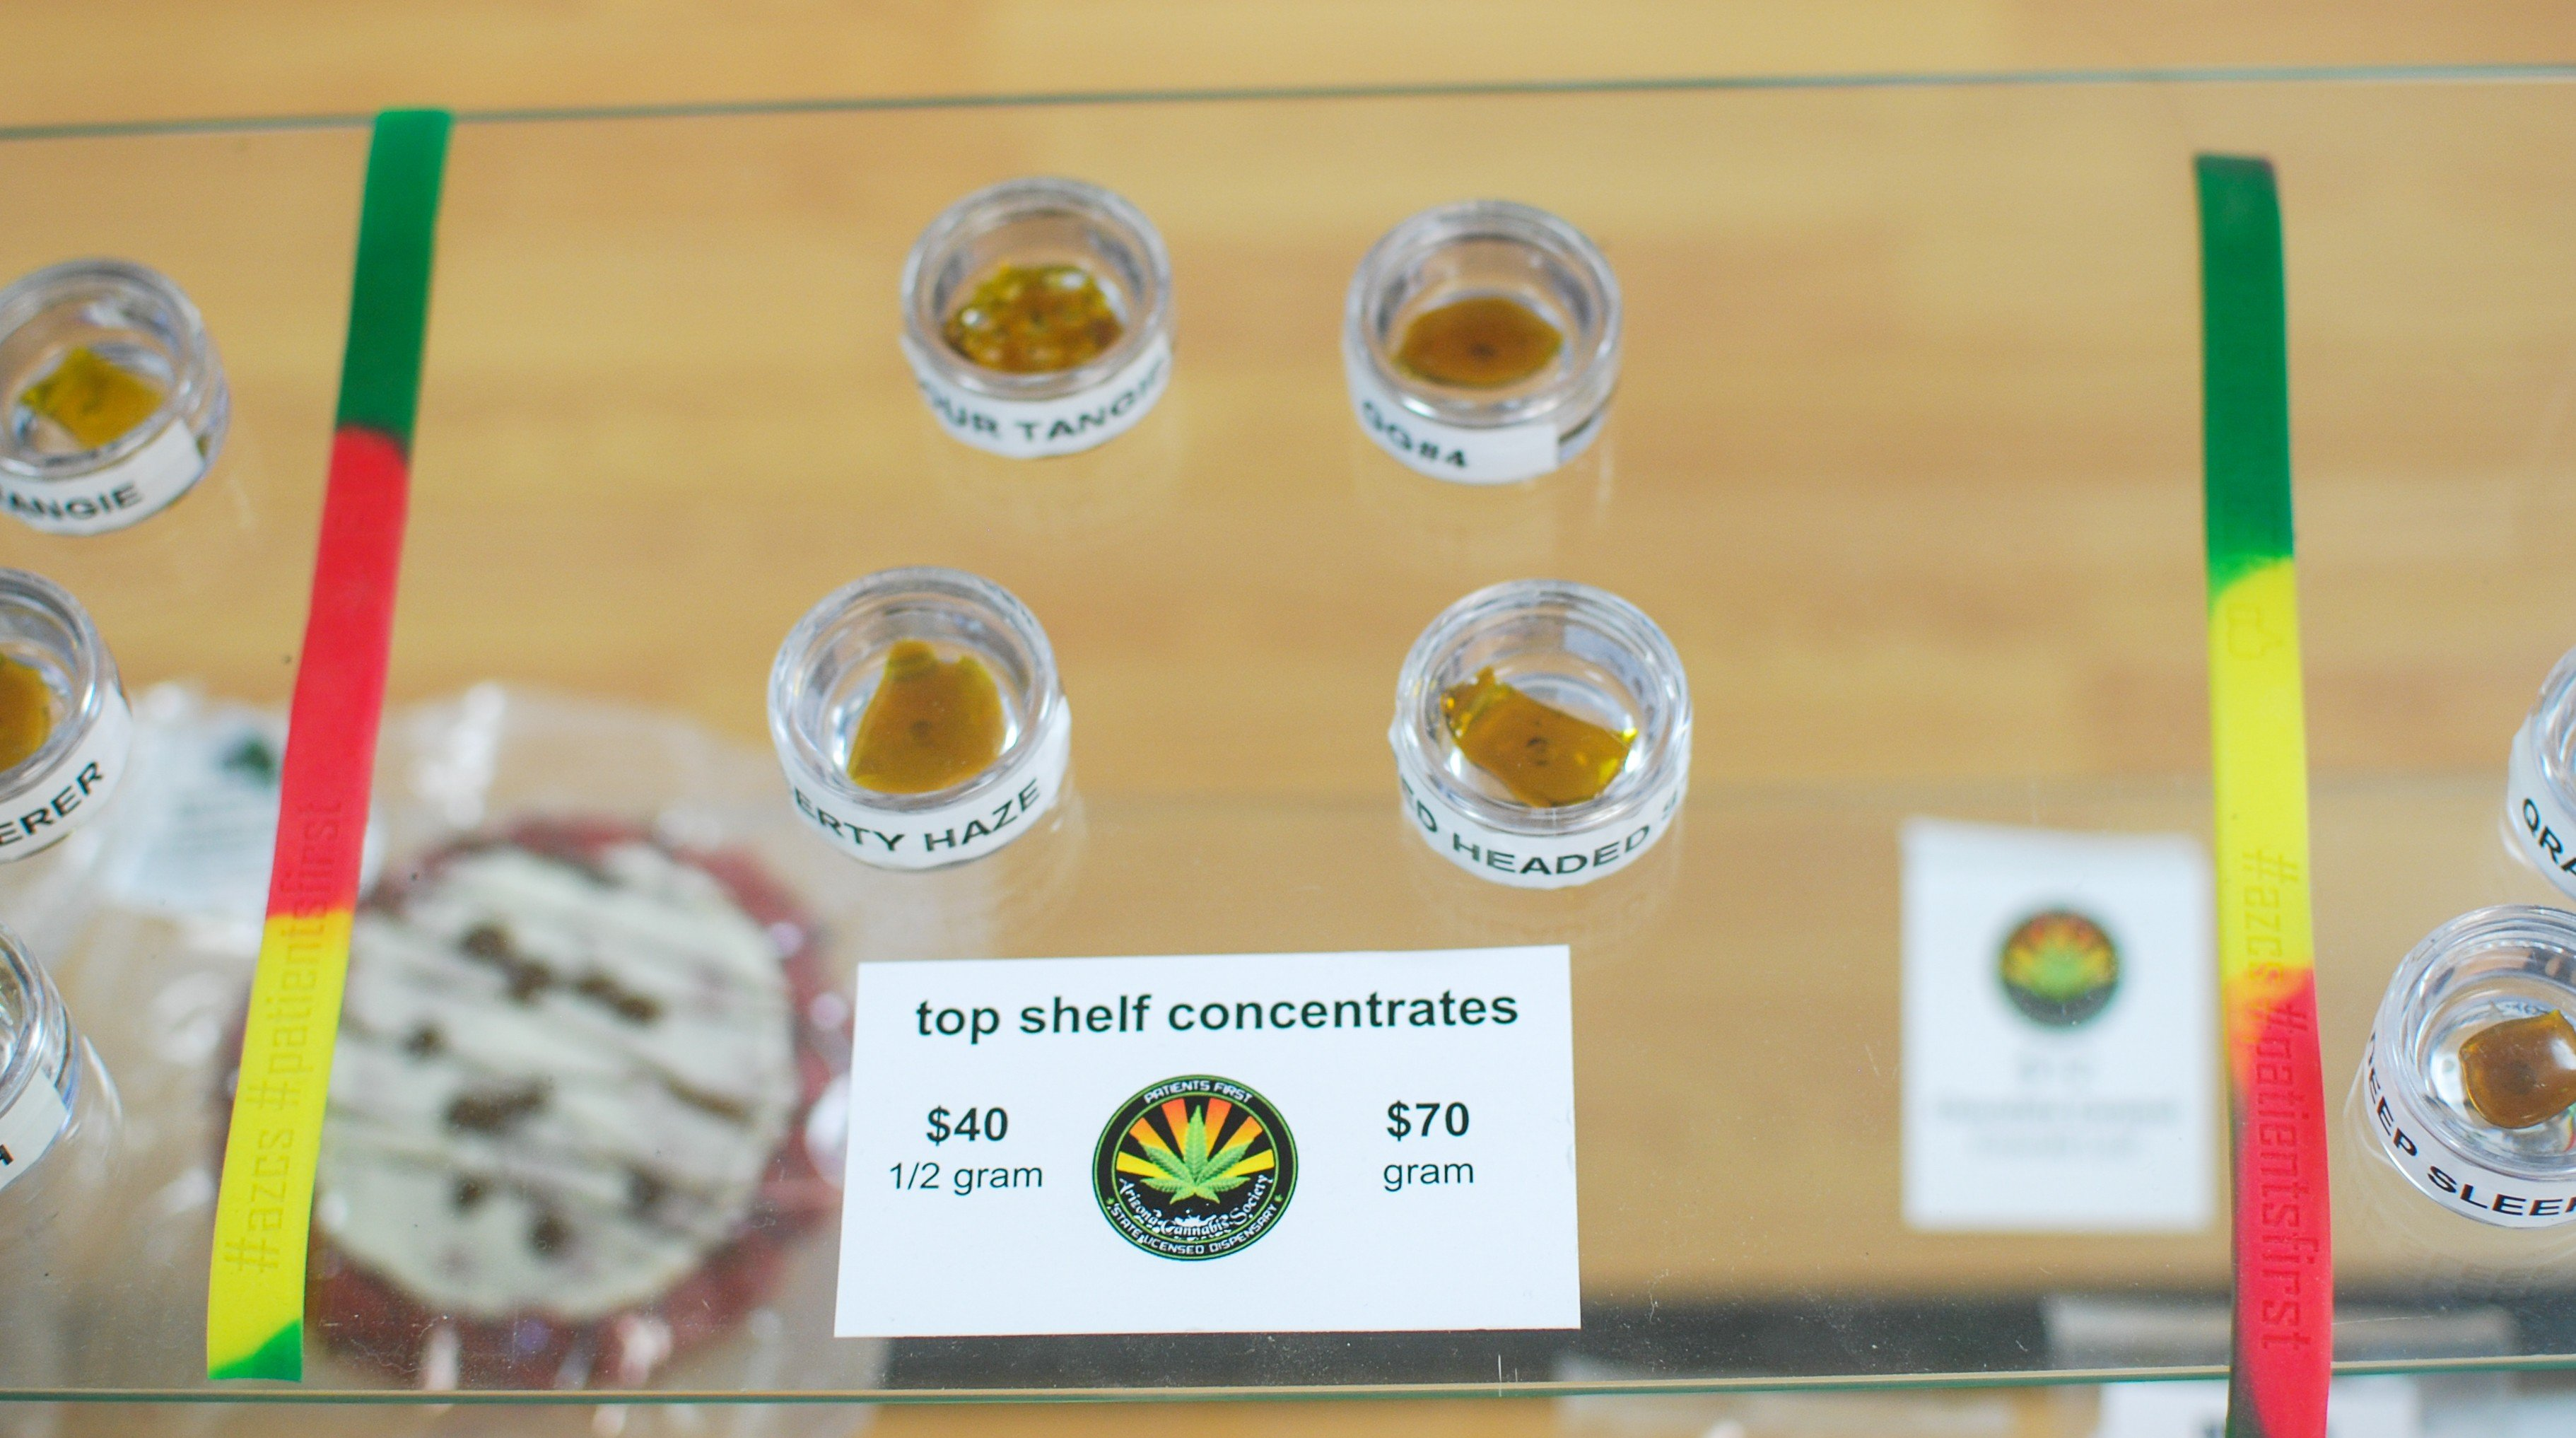 Arizona Appeals Court Rules Medical-Cannabis Extracts Like Vape Pen Oil Are Illegal